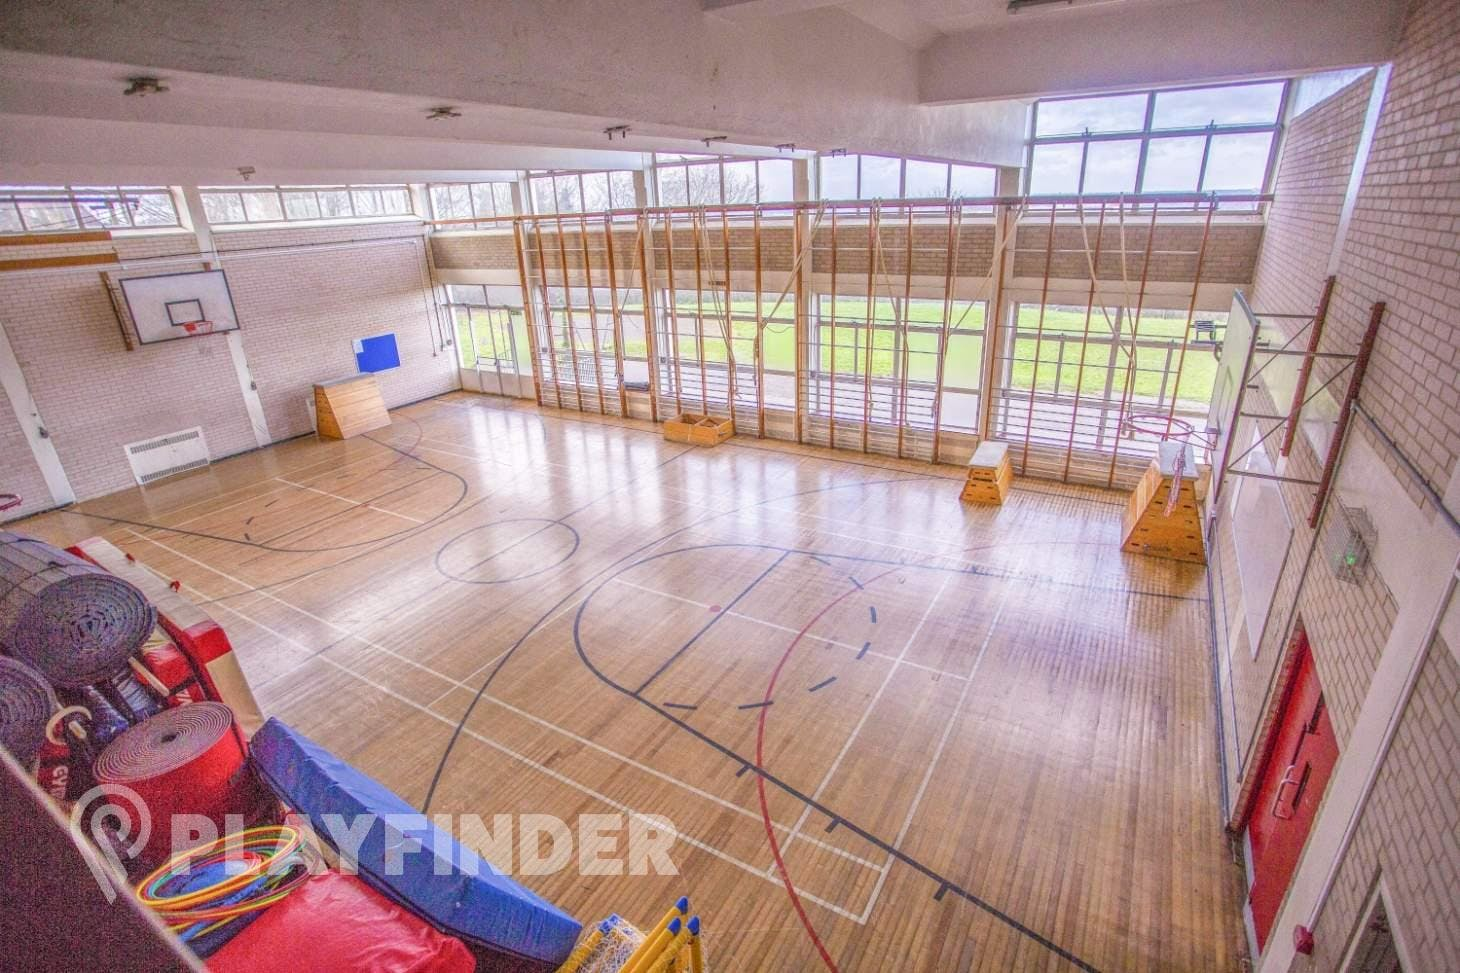 Bishop Thomas Grant School Indoor basketball court